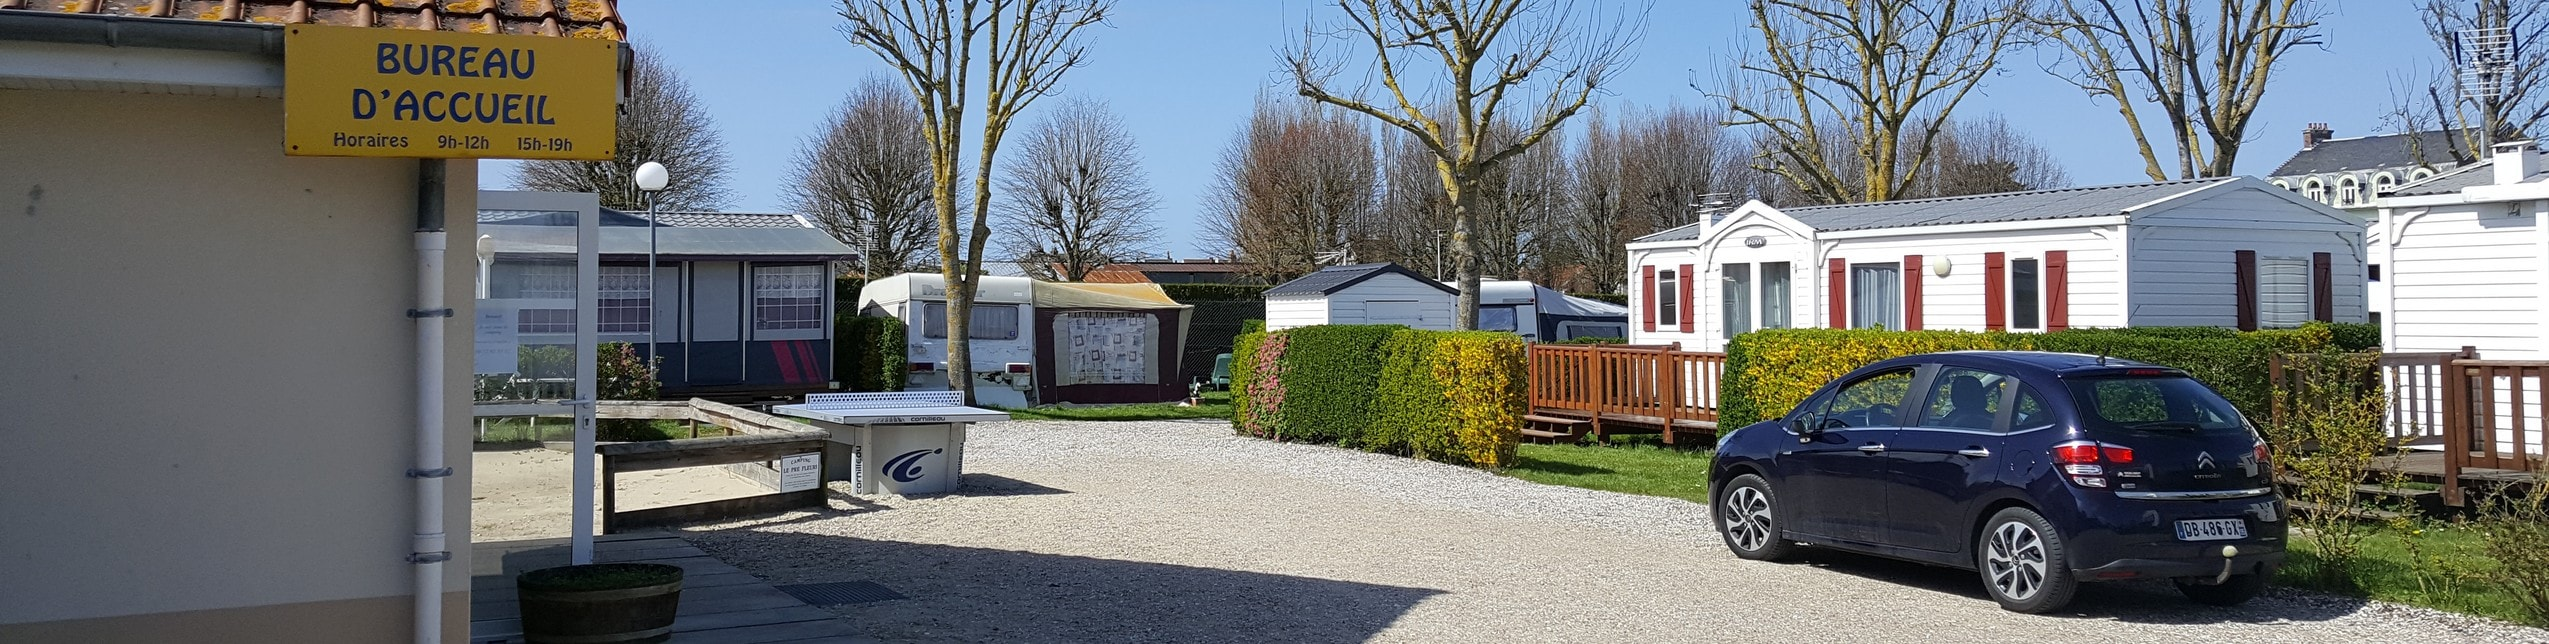 camping-leprefleuri-lecrotoy-baiedesomme-services